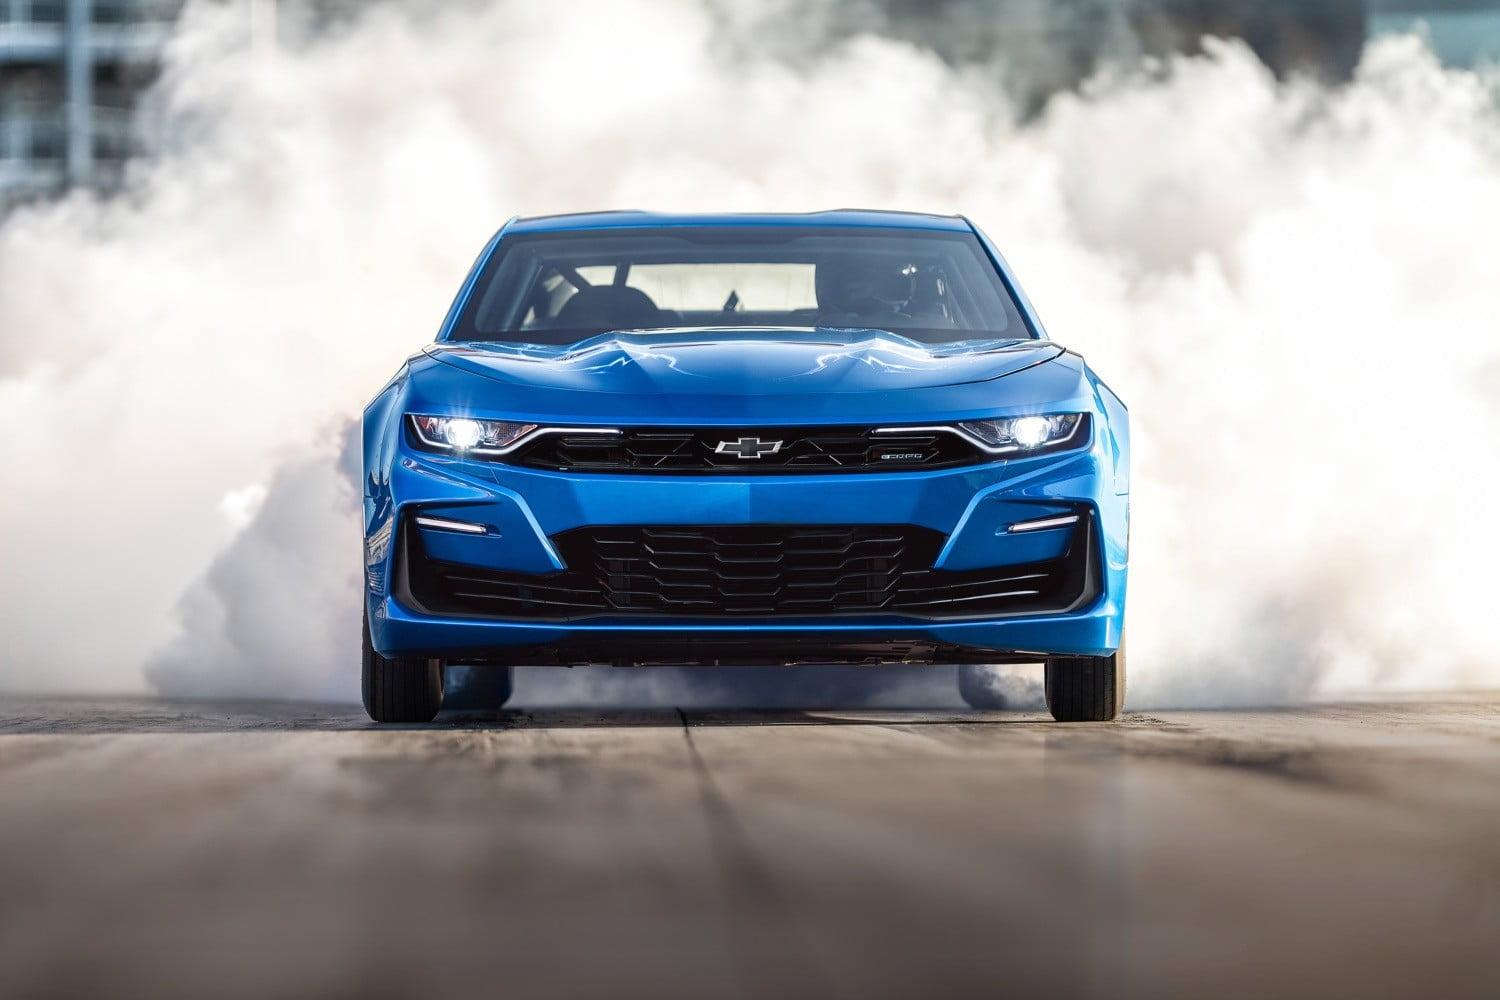 Chevrolet eCOPO Camaro Electric Drag Racer Headed to Auction